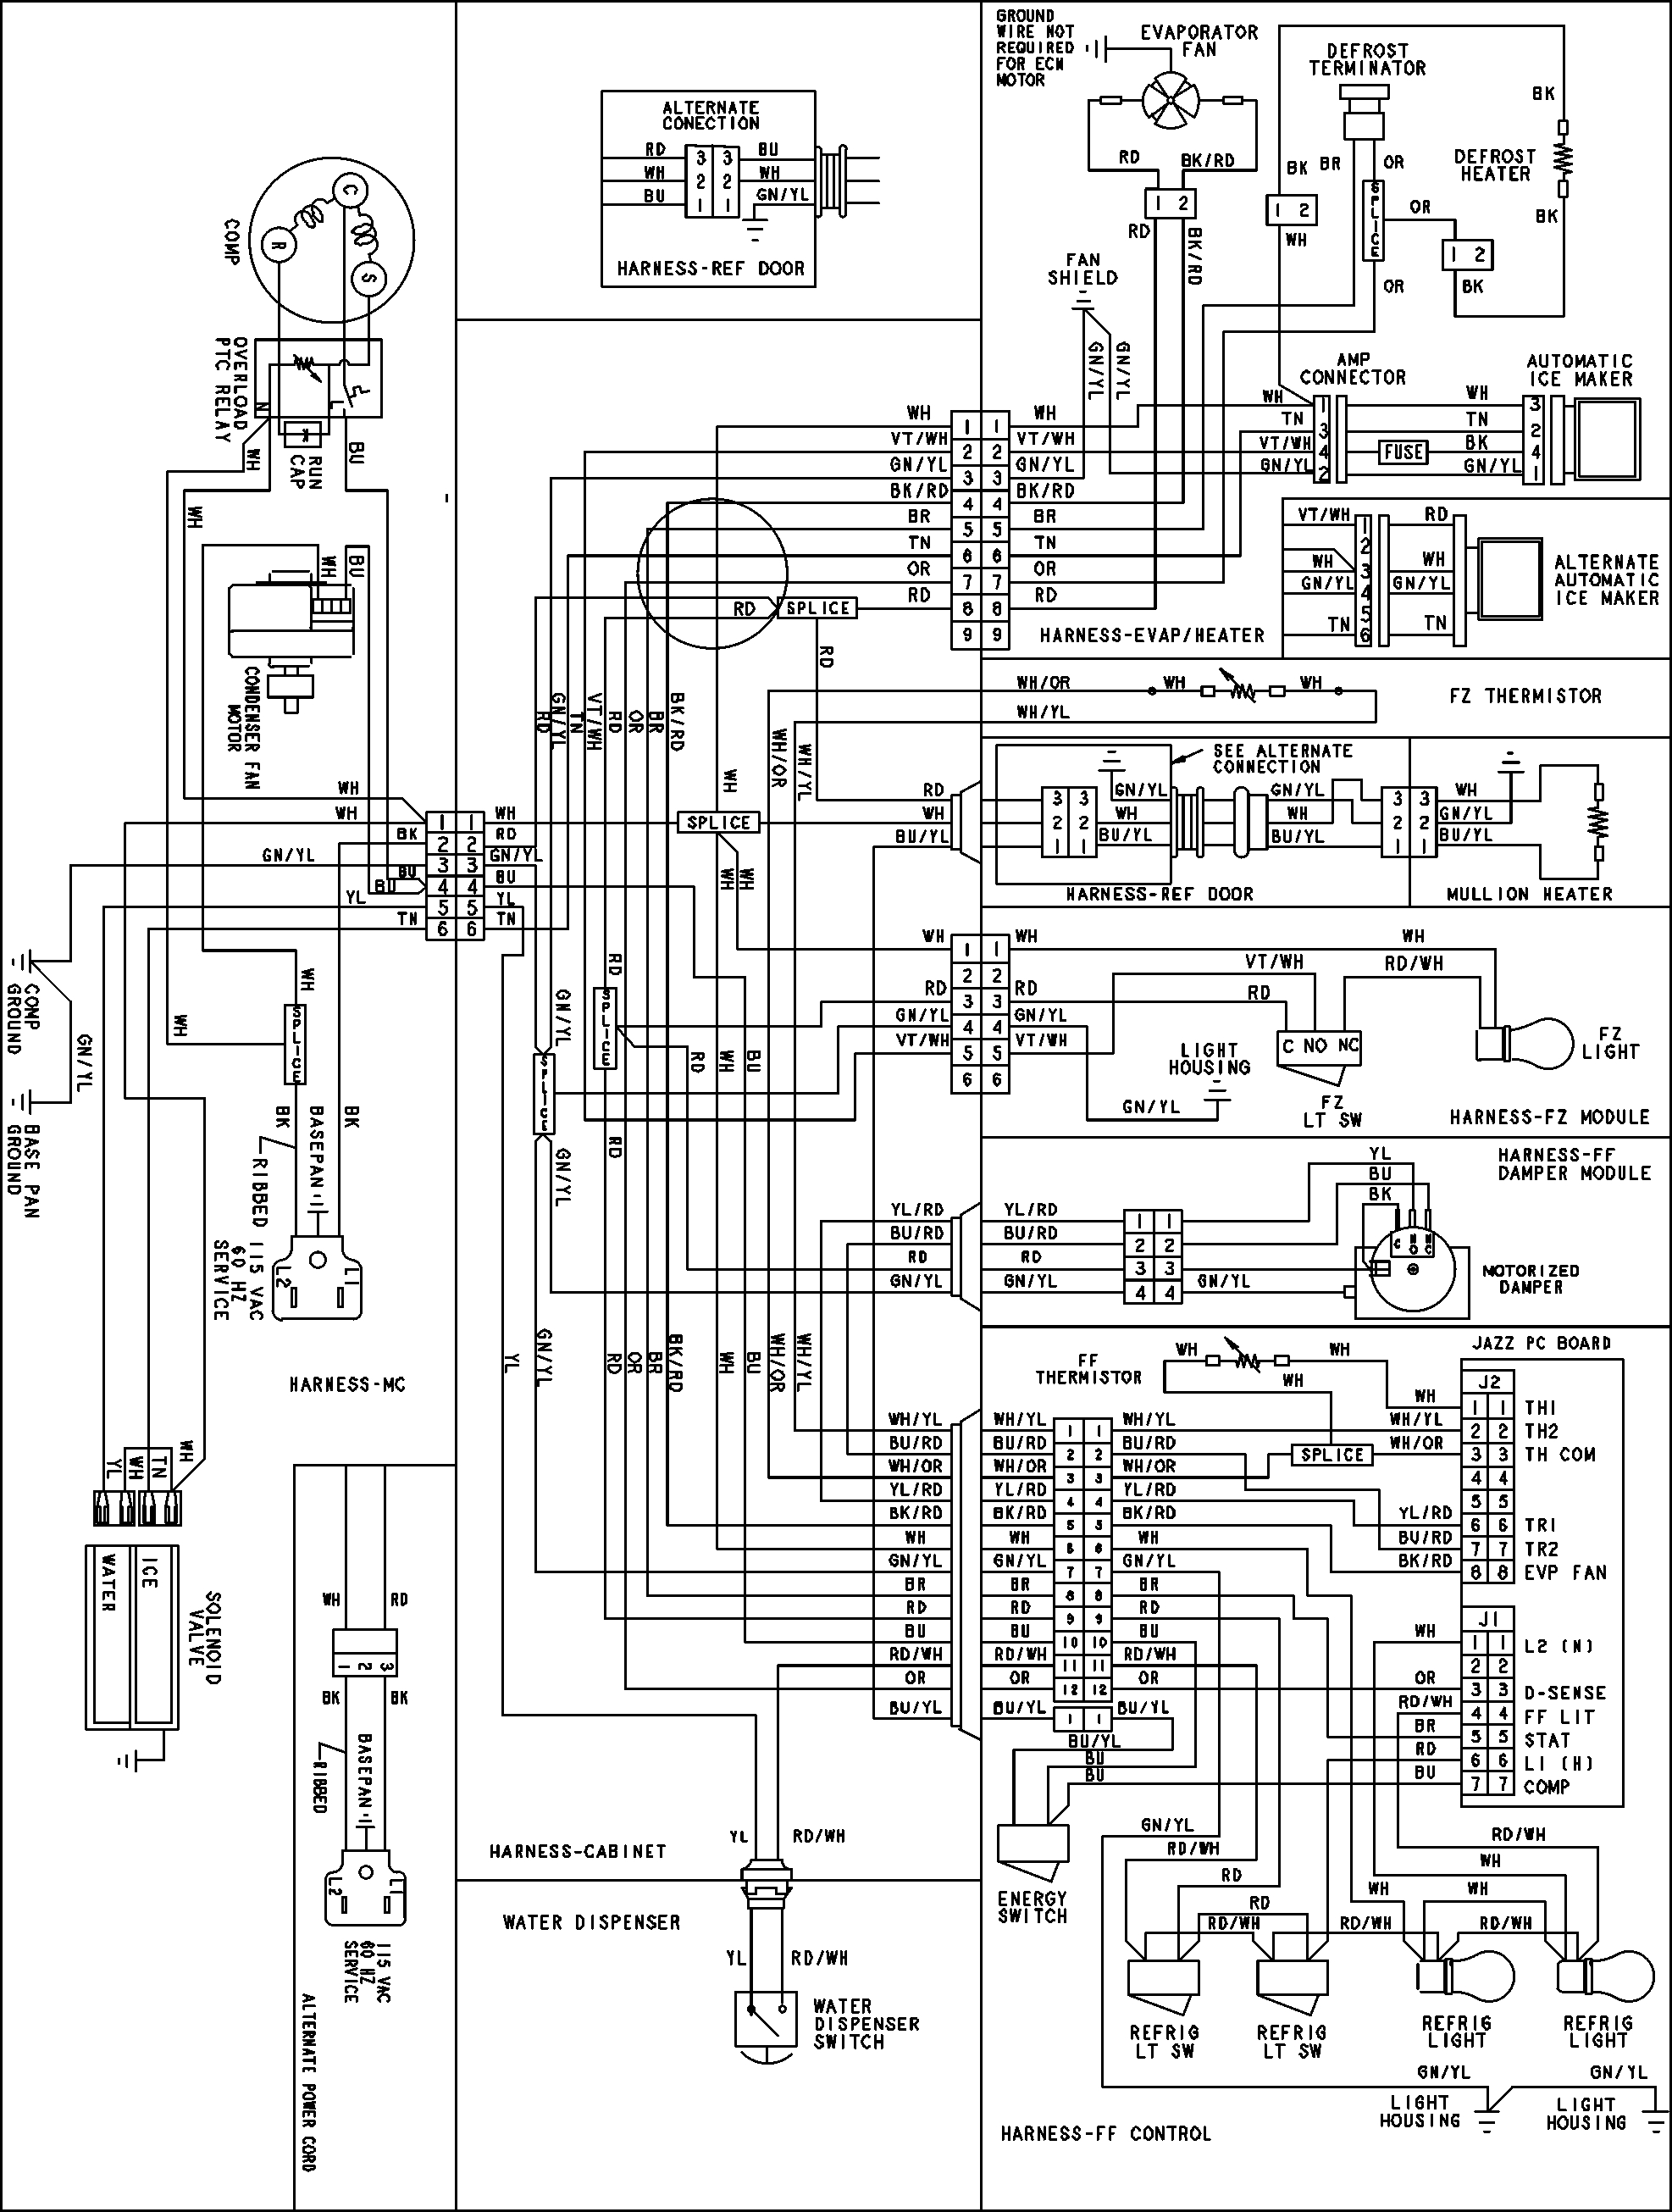 Polaris Ranger 700 Xp Wiring Diagram Sample